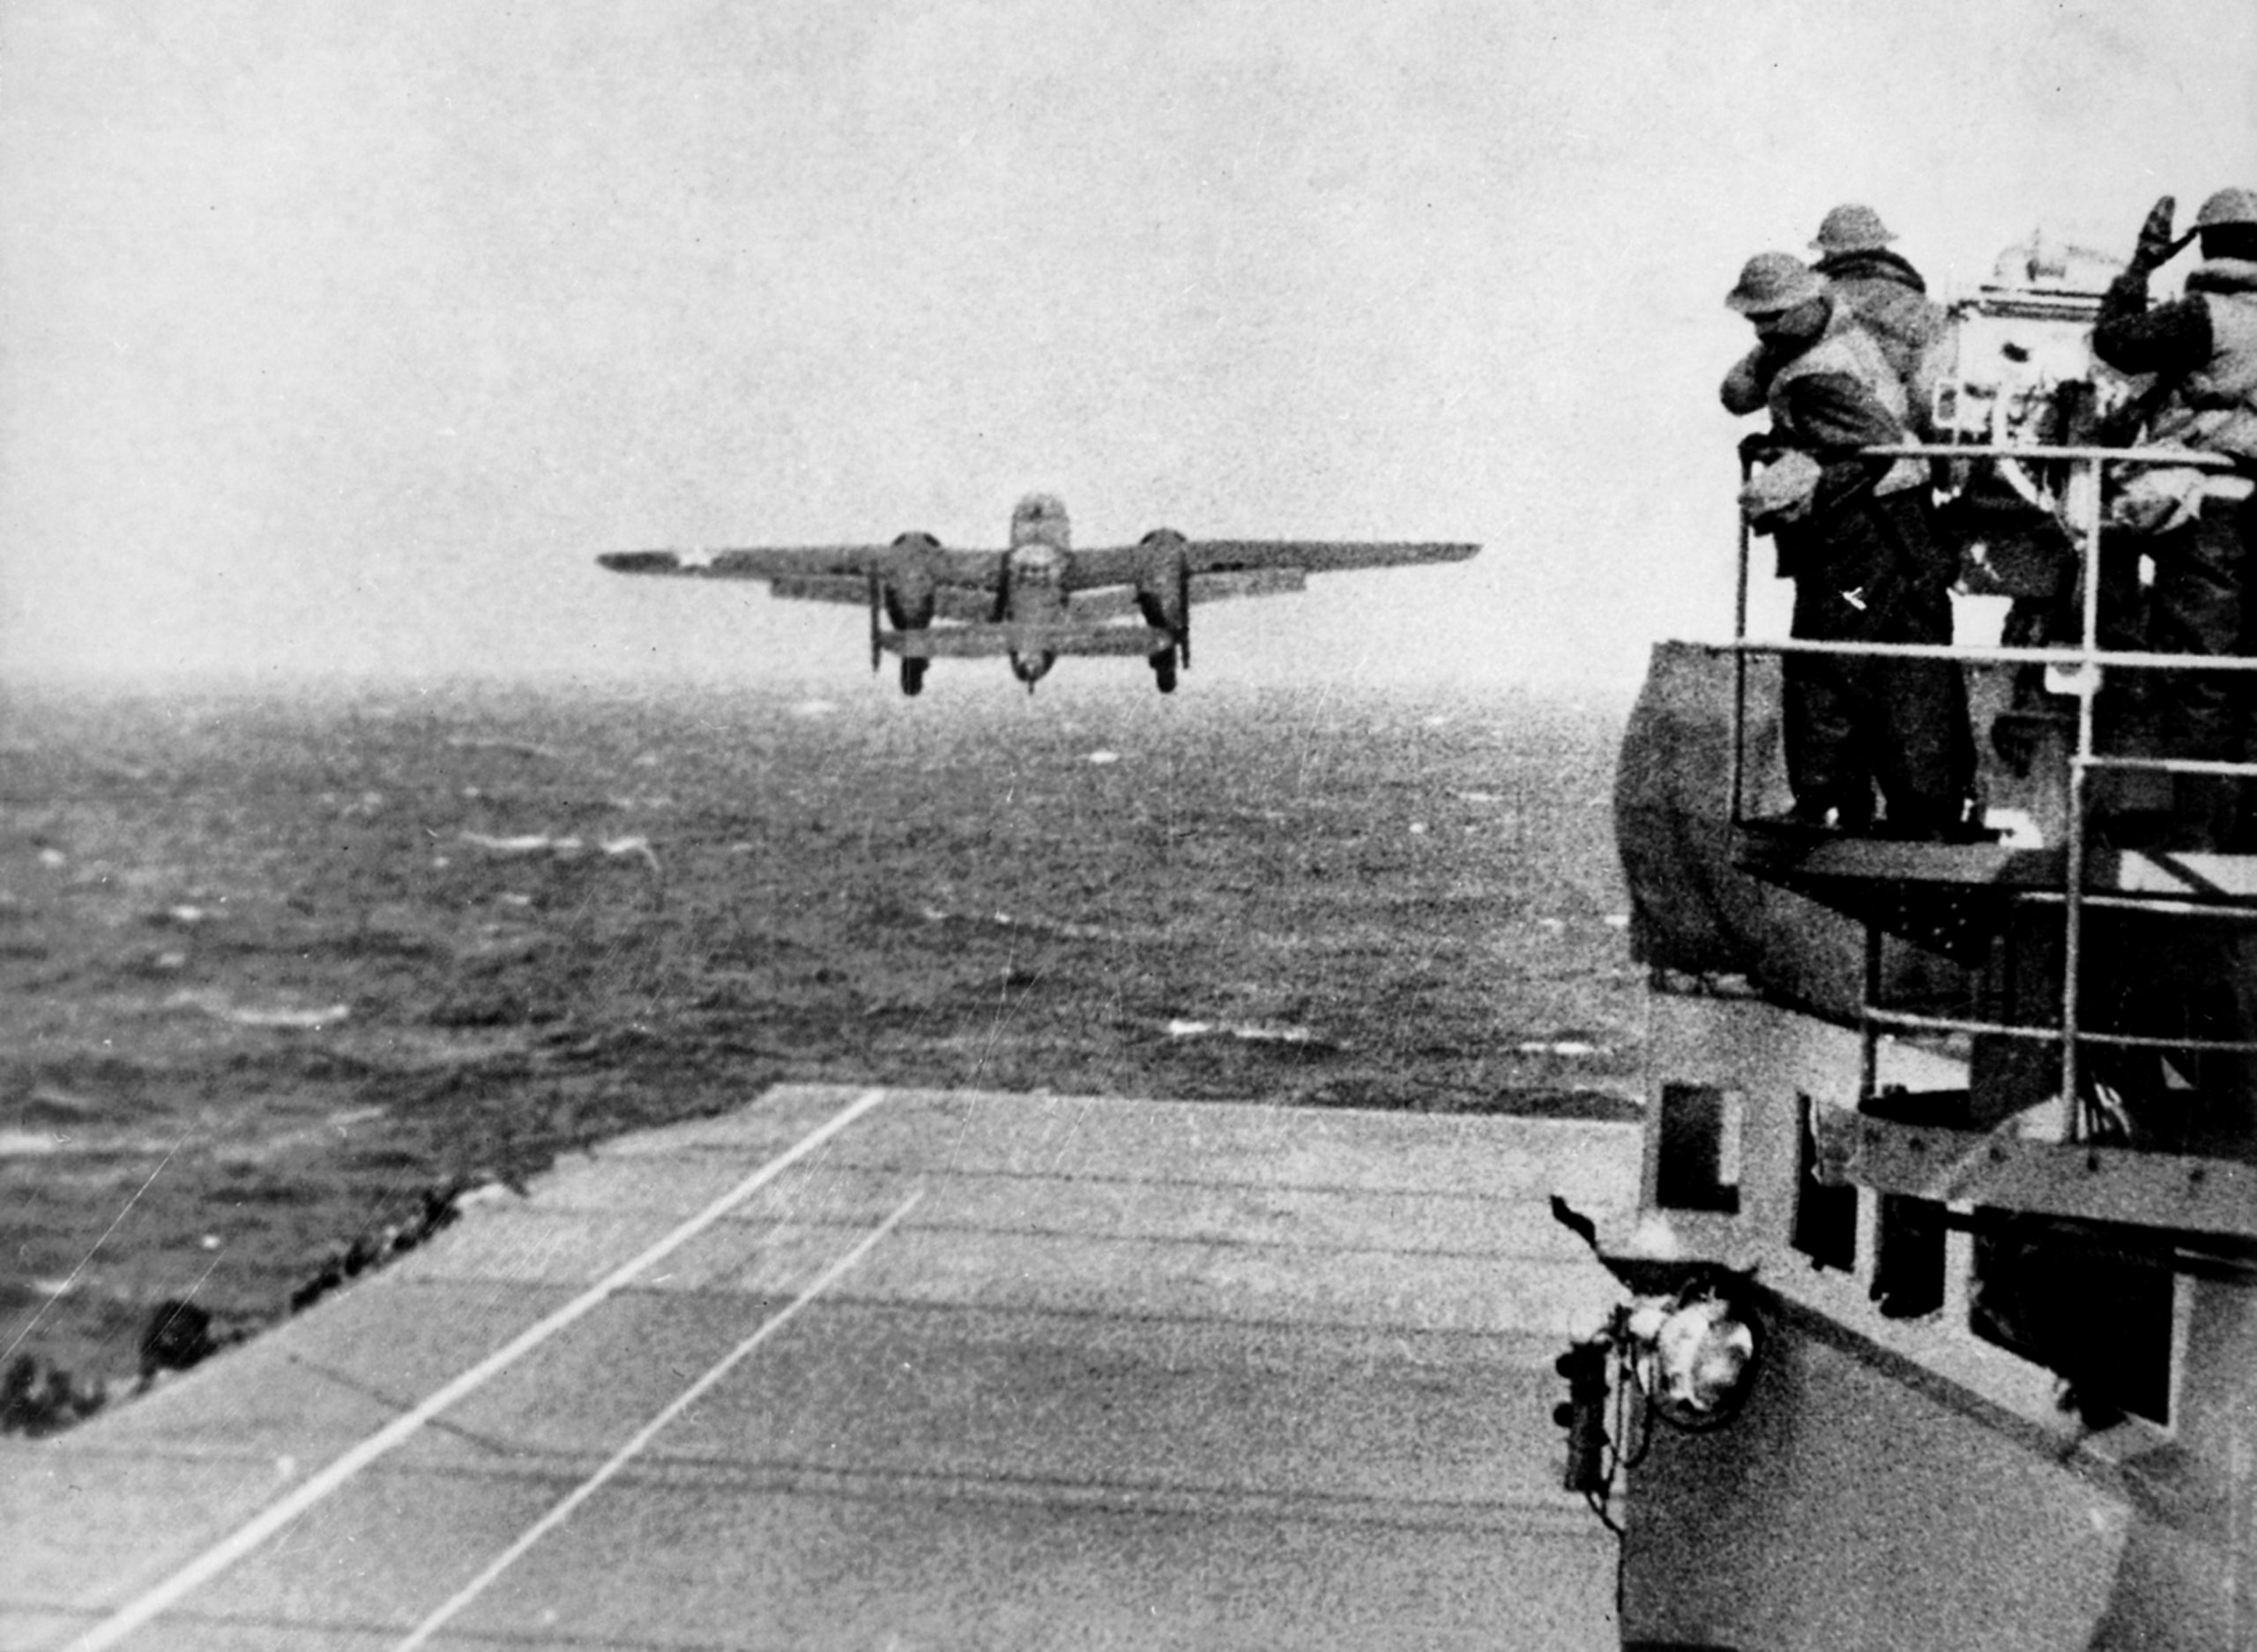 B-25B Mitchell bomber takes off